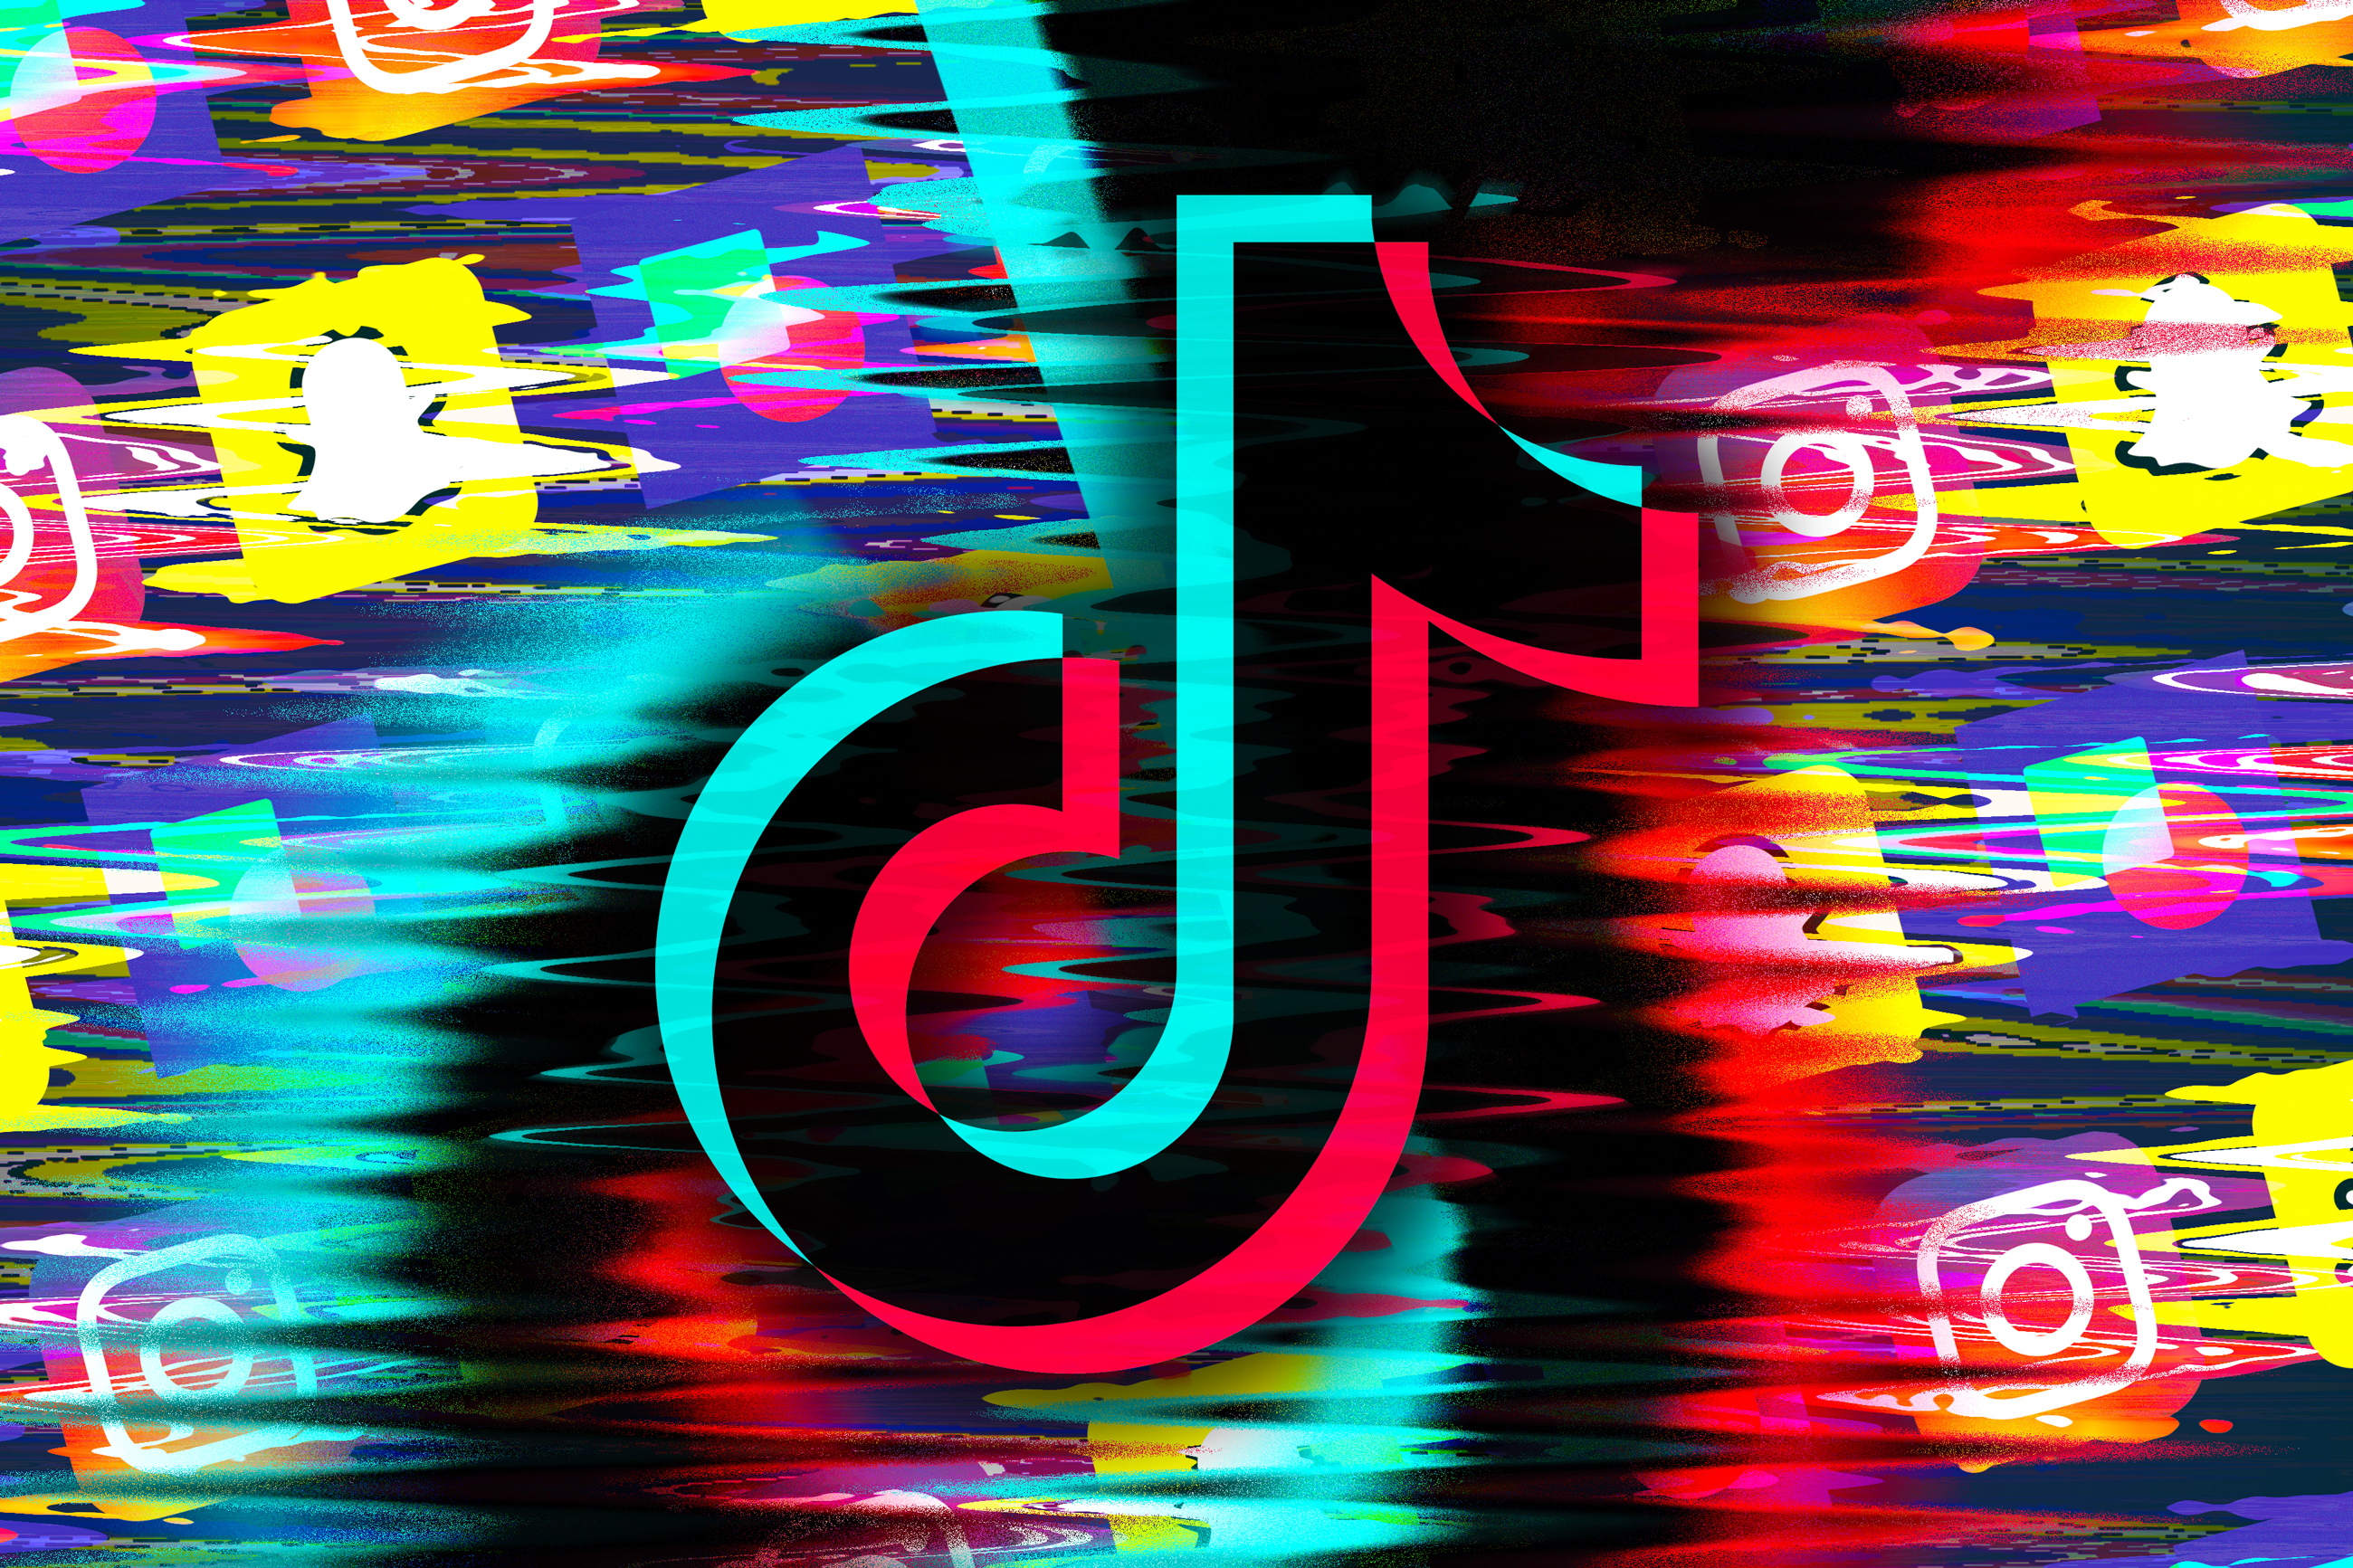 Opinion: Let the TikTok copycat wars begin